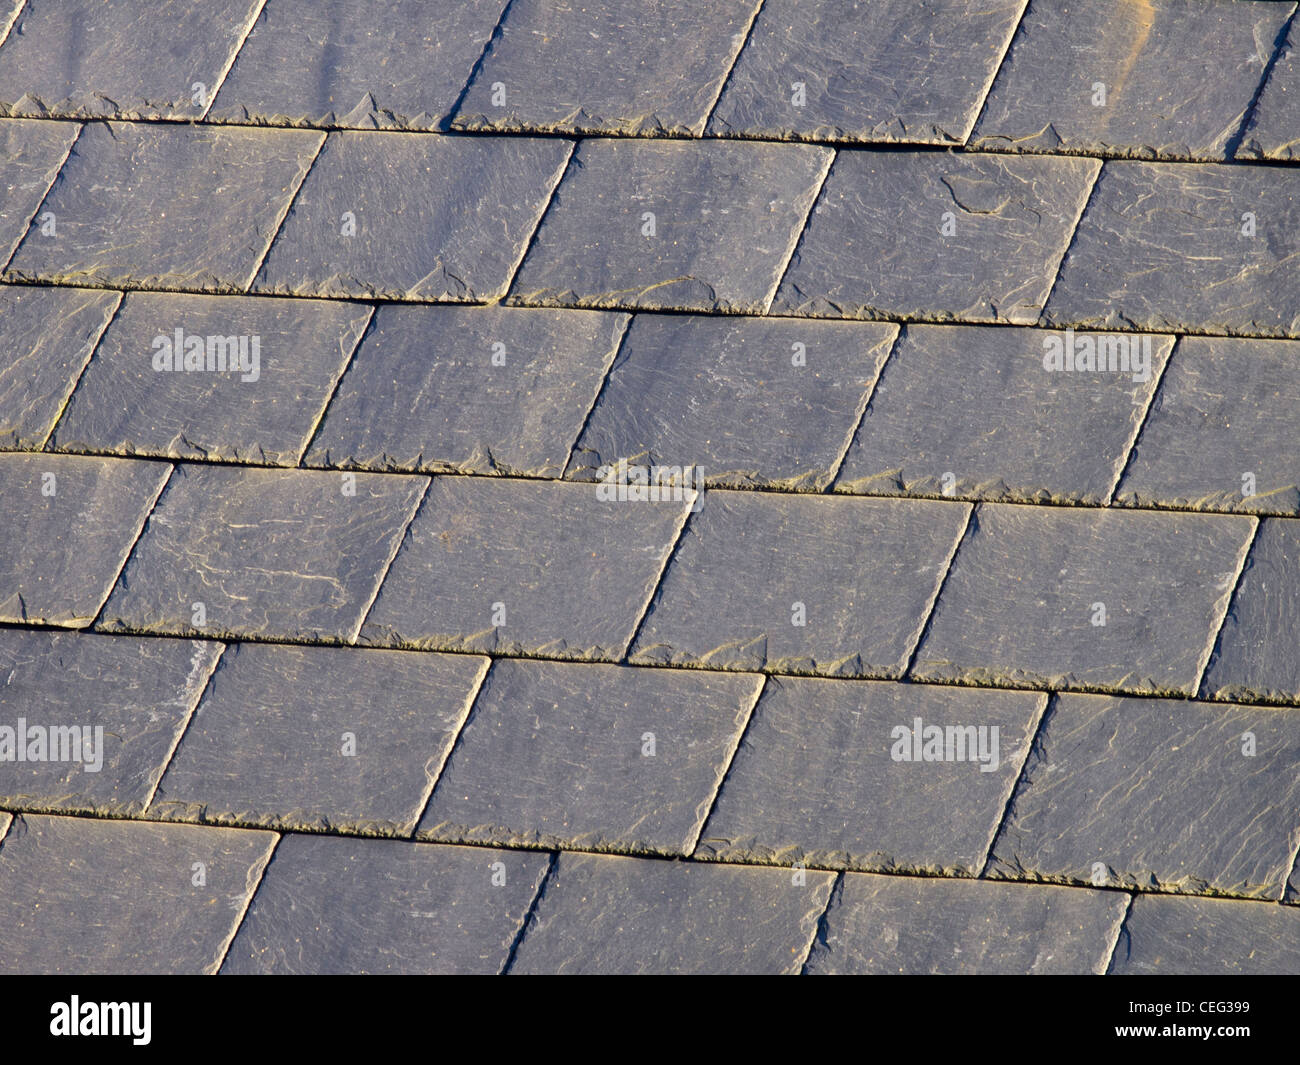 Grey Slate Roof Tiles Stock Photo Royalty Free Image